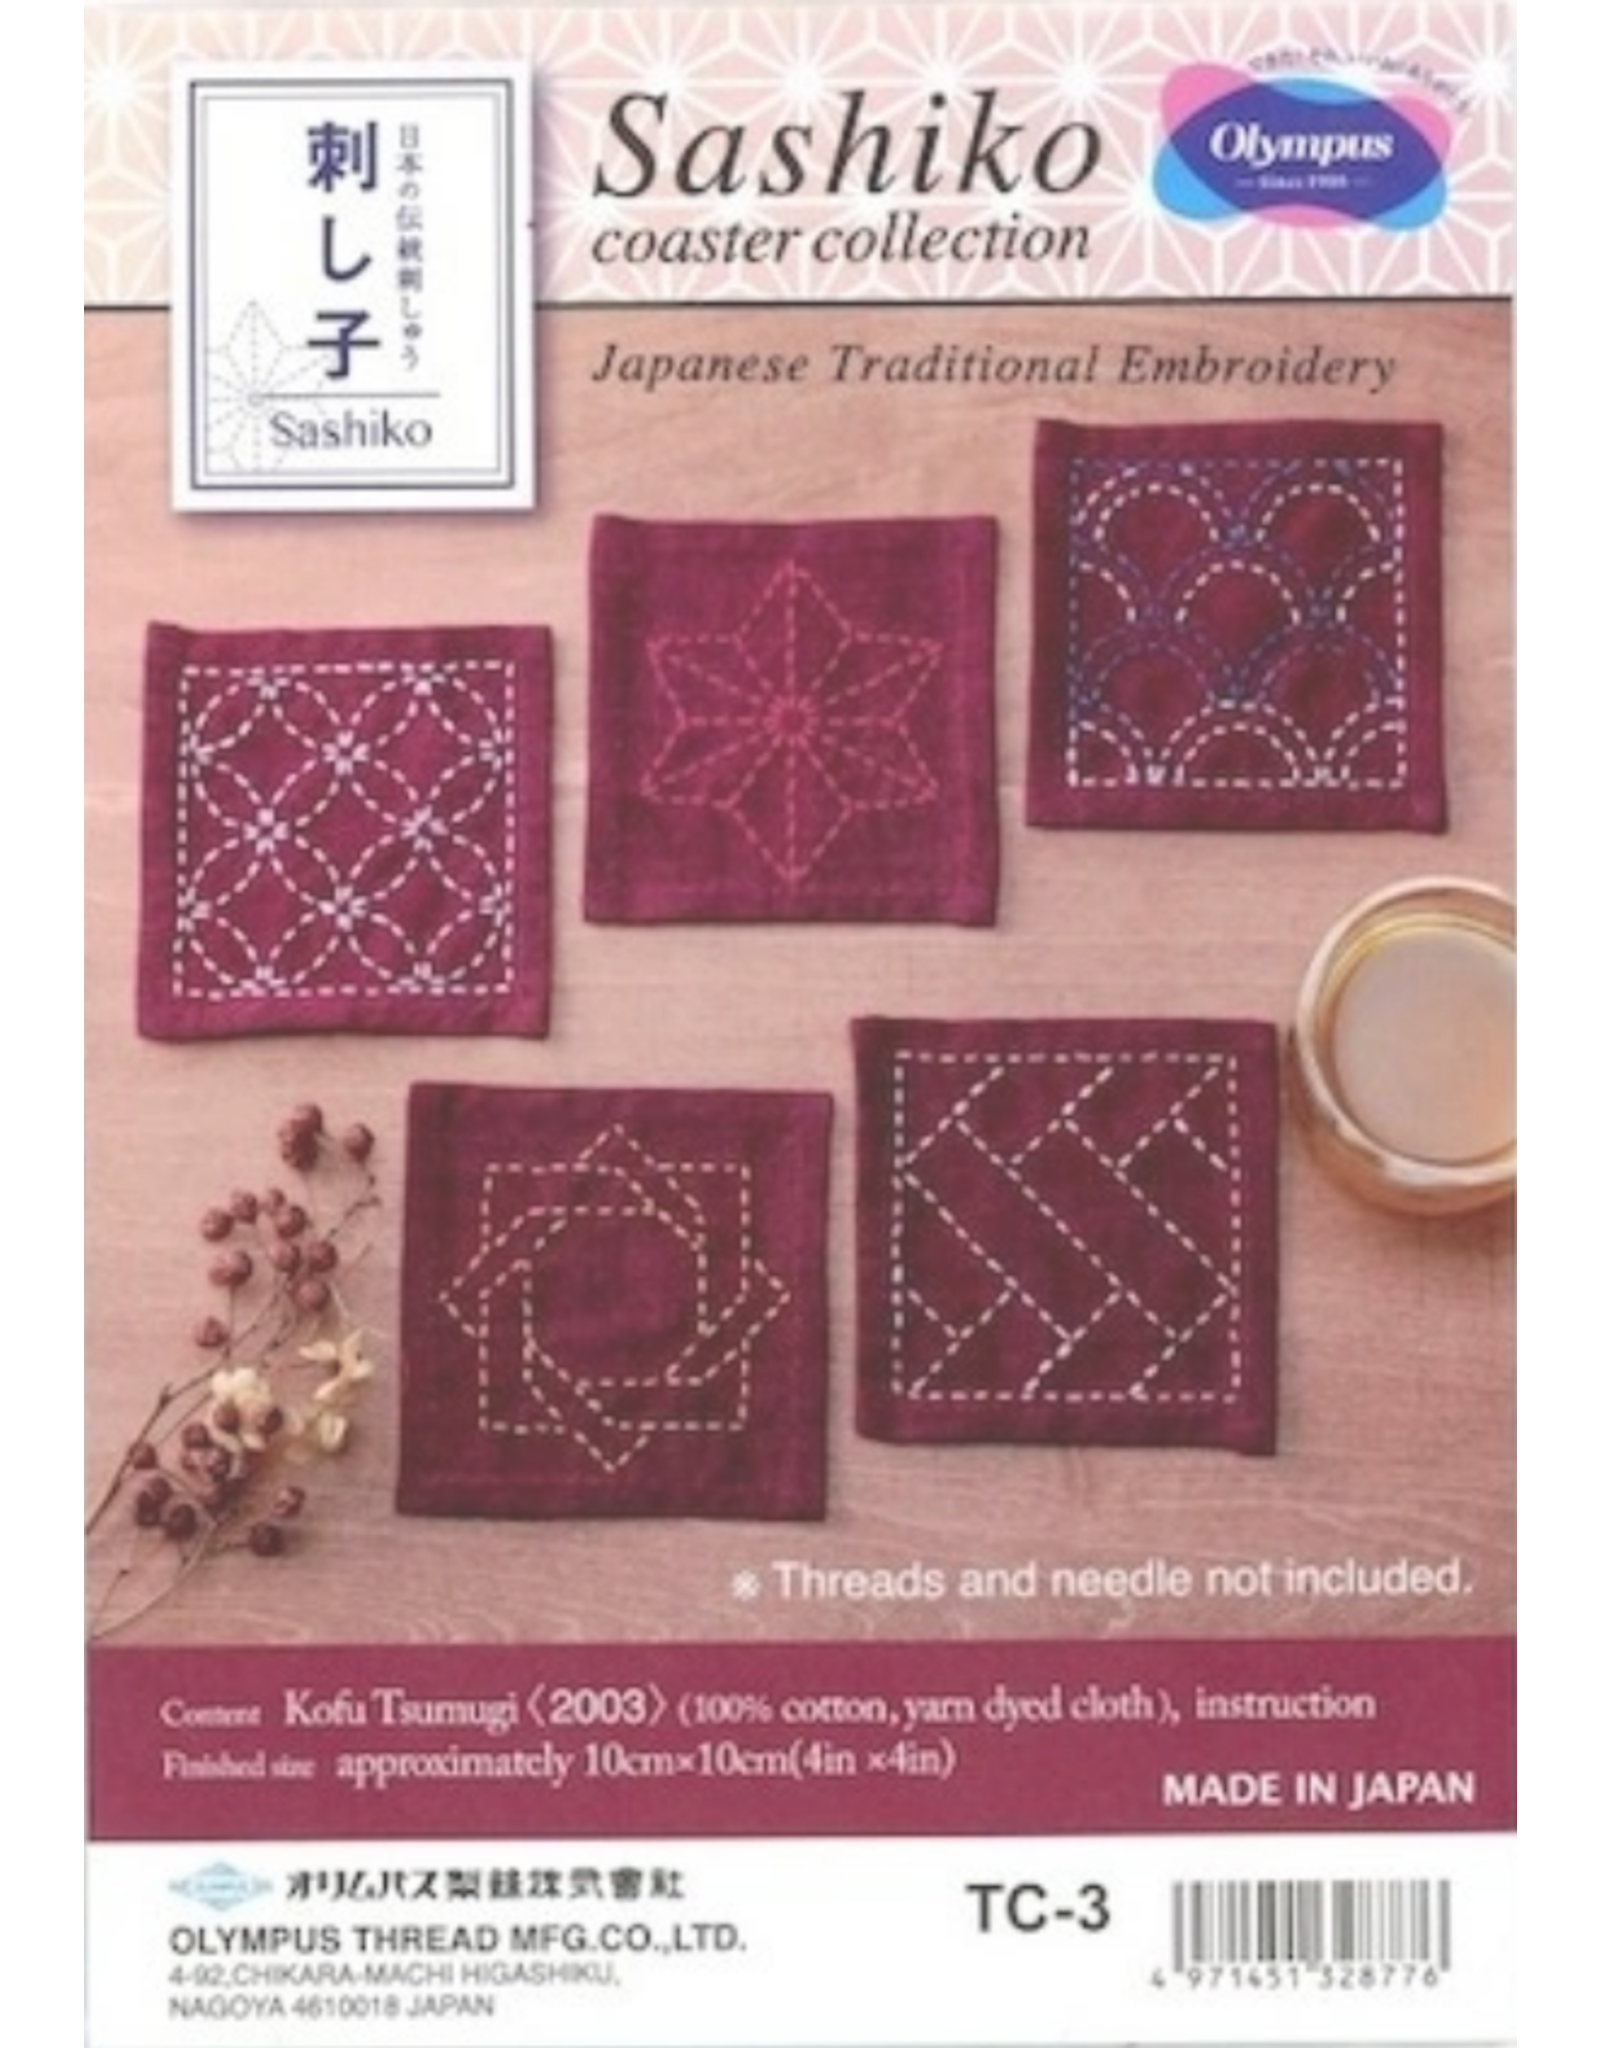 Olympus Sashiko Coaster Collection, Deep Red dyed cloth made of 100% Cotton.